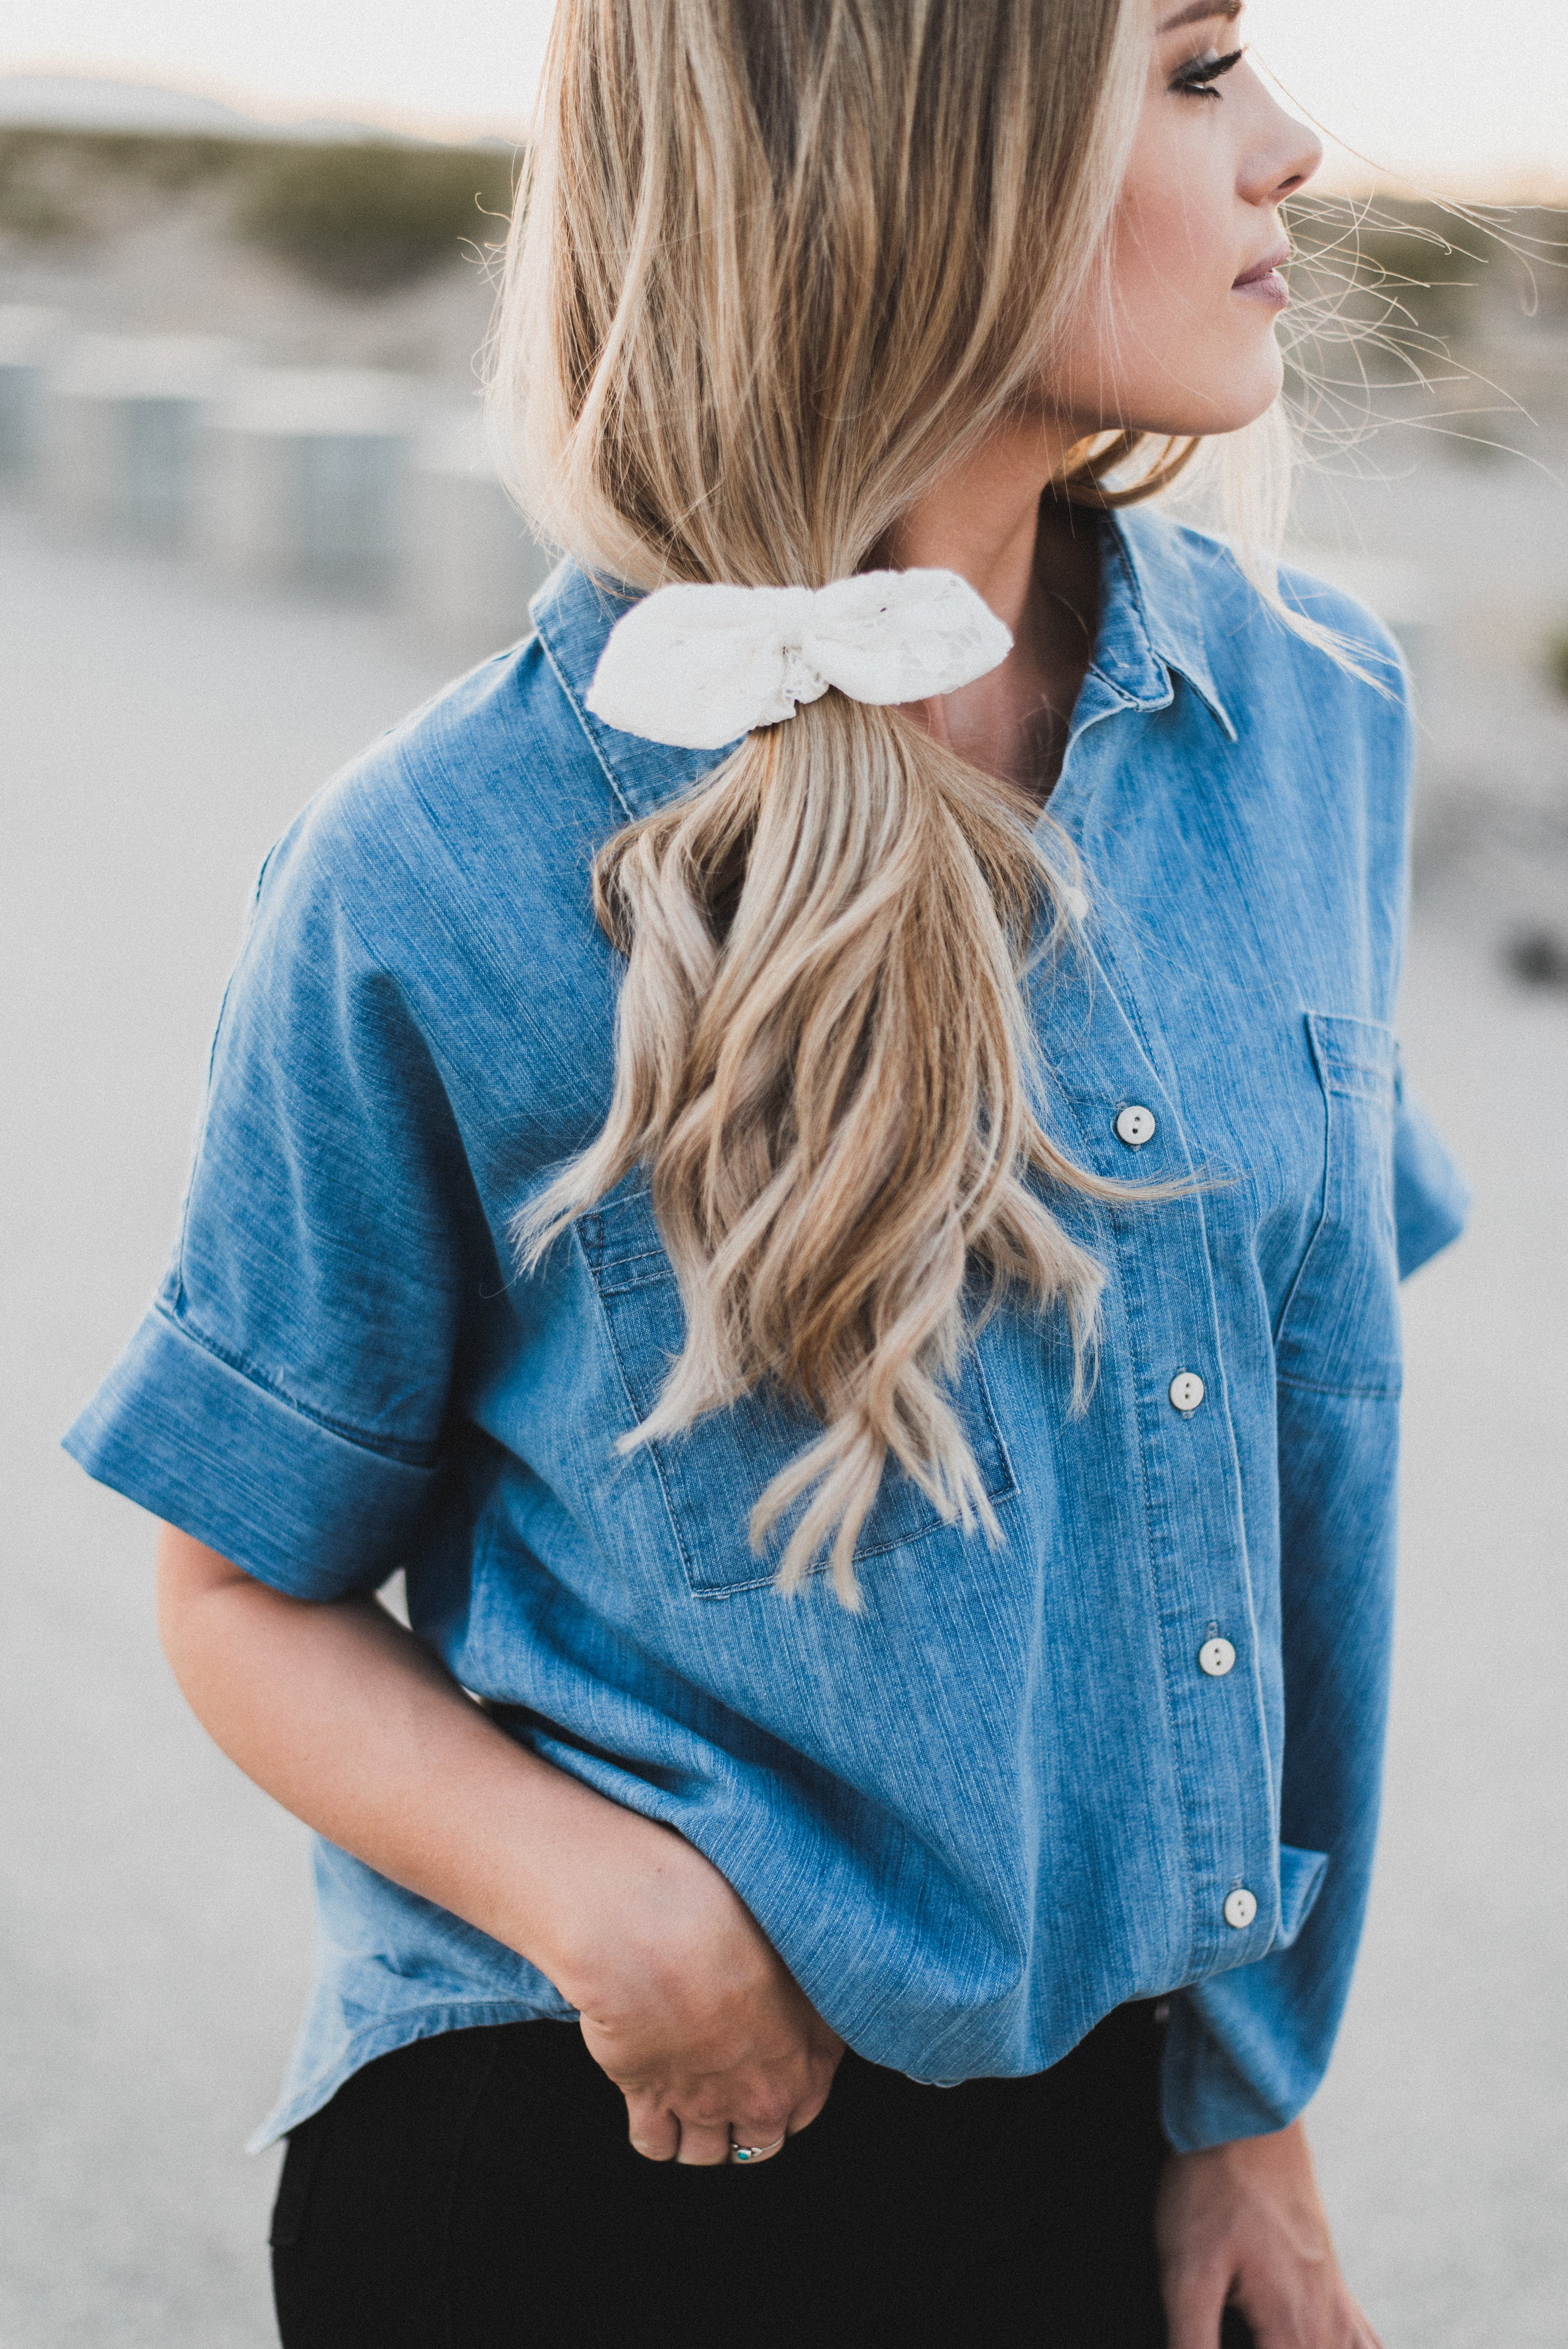 THE WHITE LACE BOW SCRUNCHIE